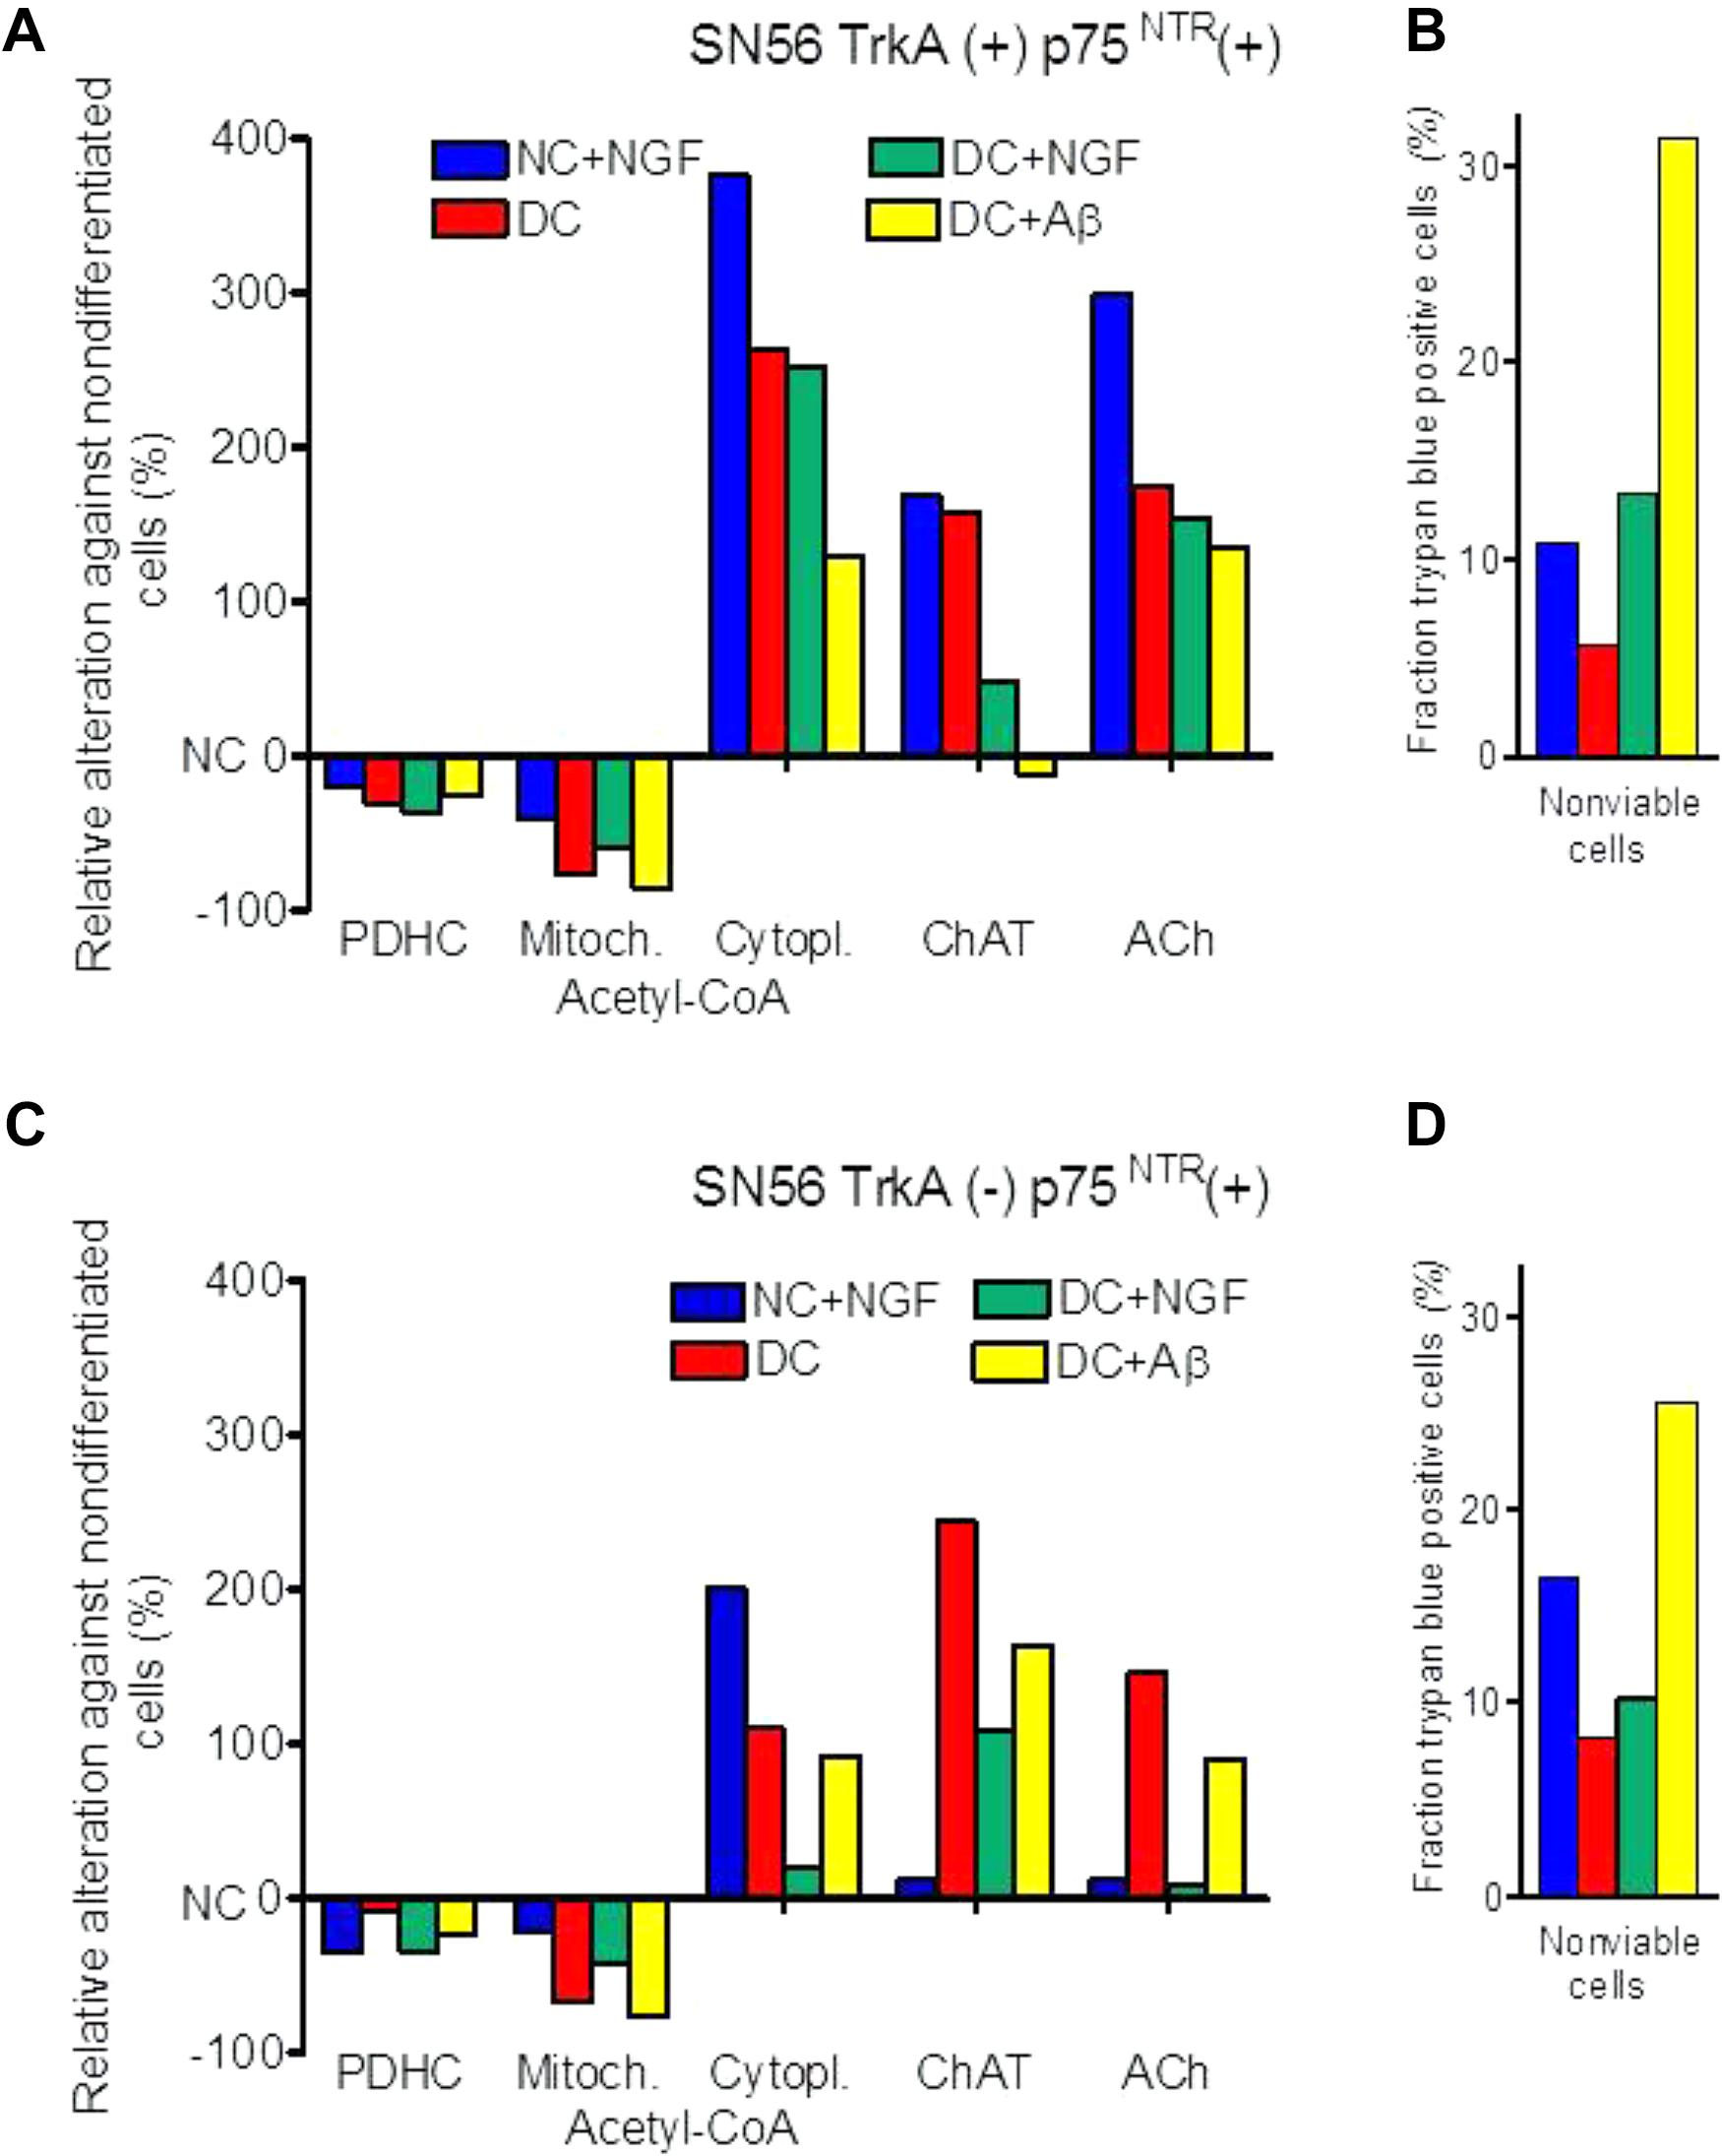 Frontiers | The Regulatory Effects of Acetyl-CoA Distribution in the